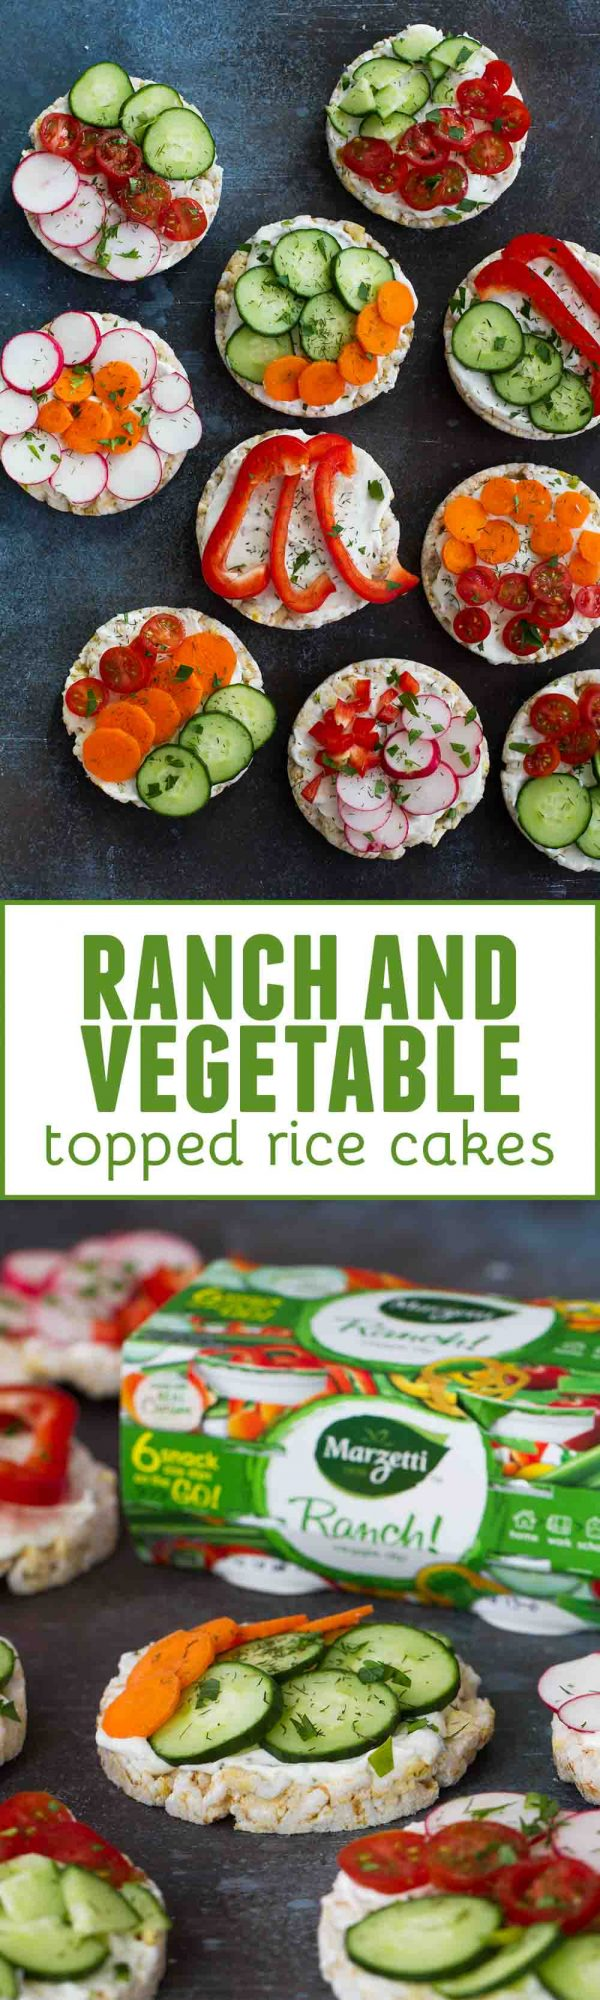 The perfect snack or super easy lunch recipe - these Ranch and Vegetable Topped Rice Cakes are easy, fast, healthy and perfect for moms and kids!